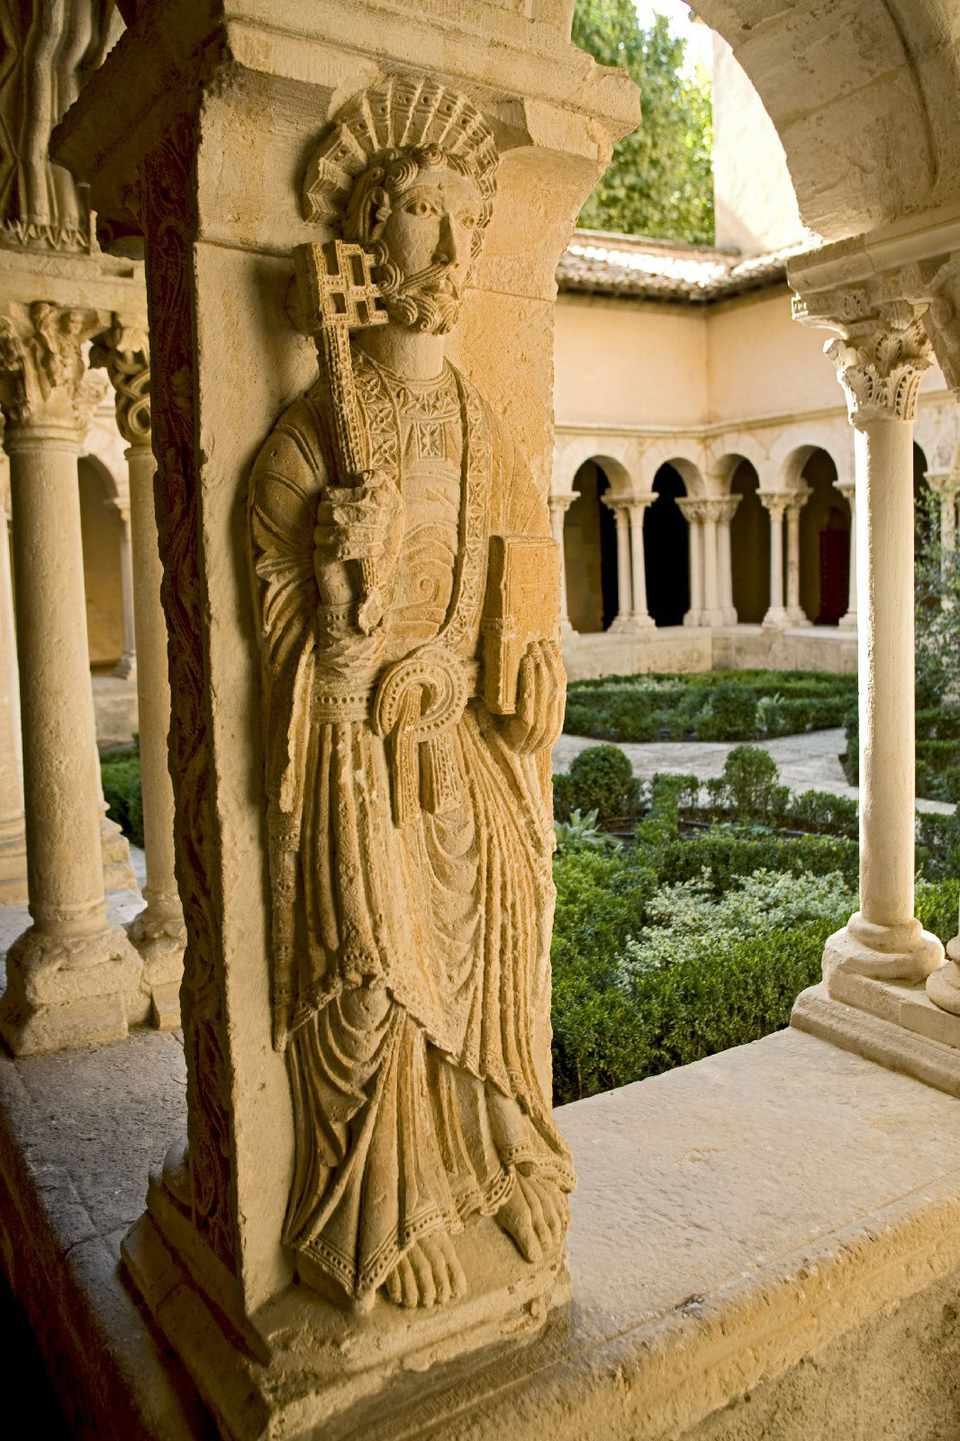 The delightful cloister of the cathedral St-Sauveur in old Aix-en-Provence